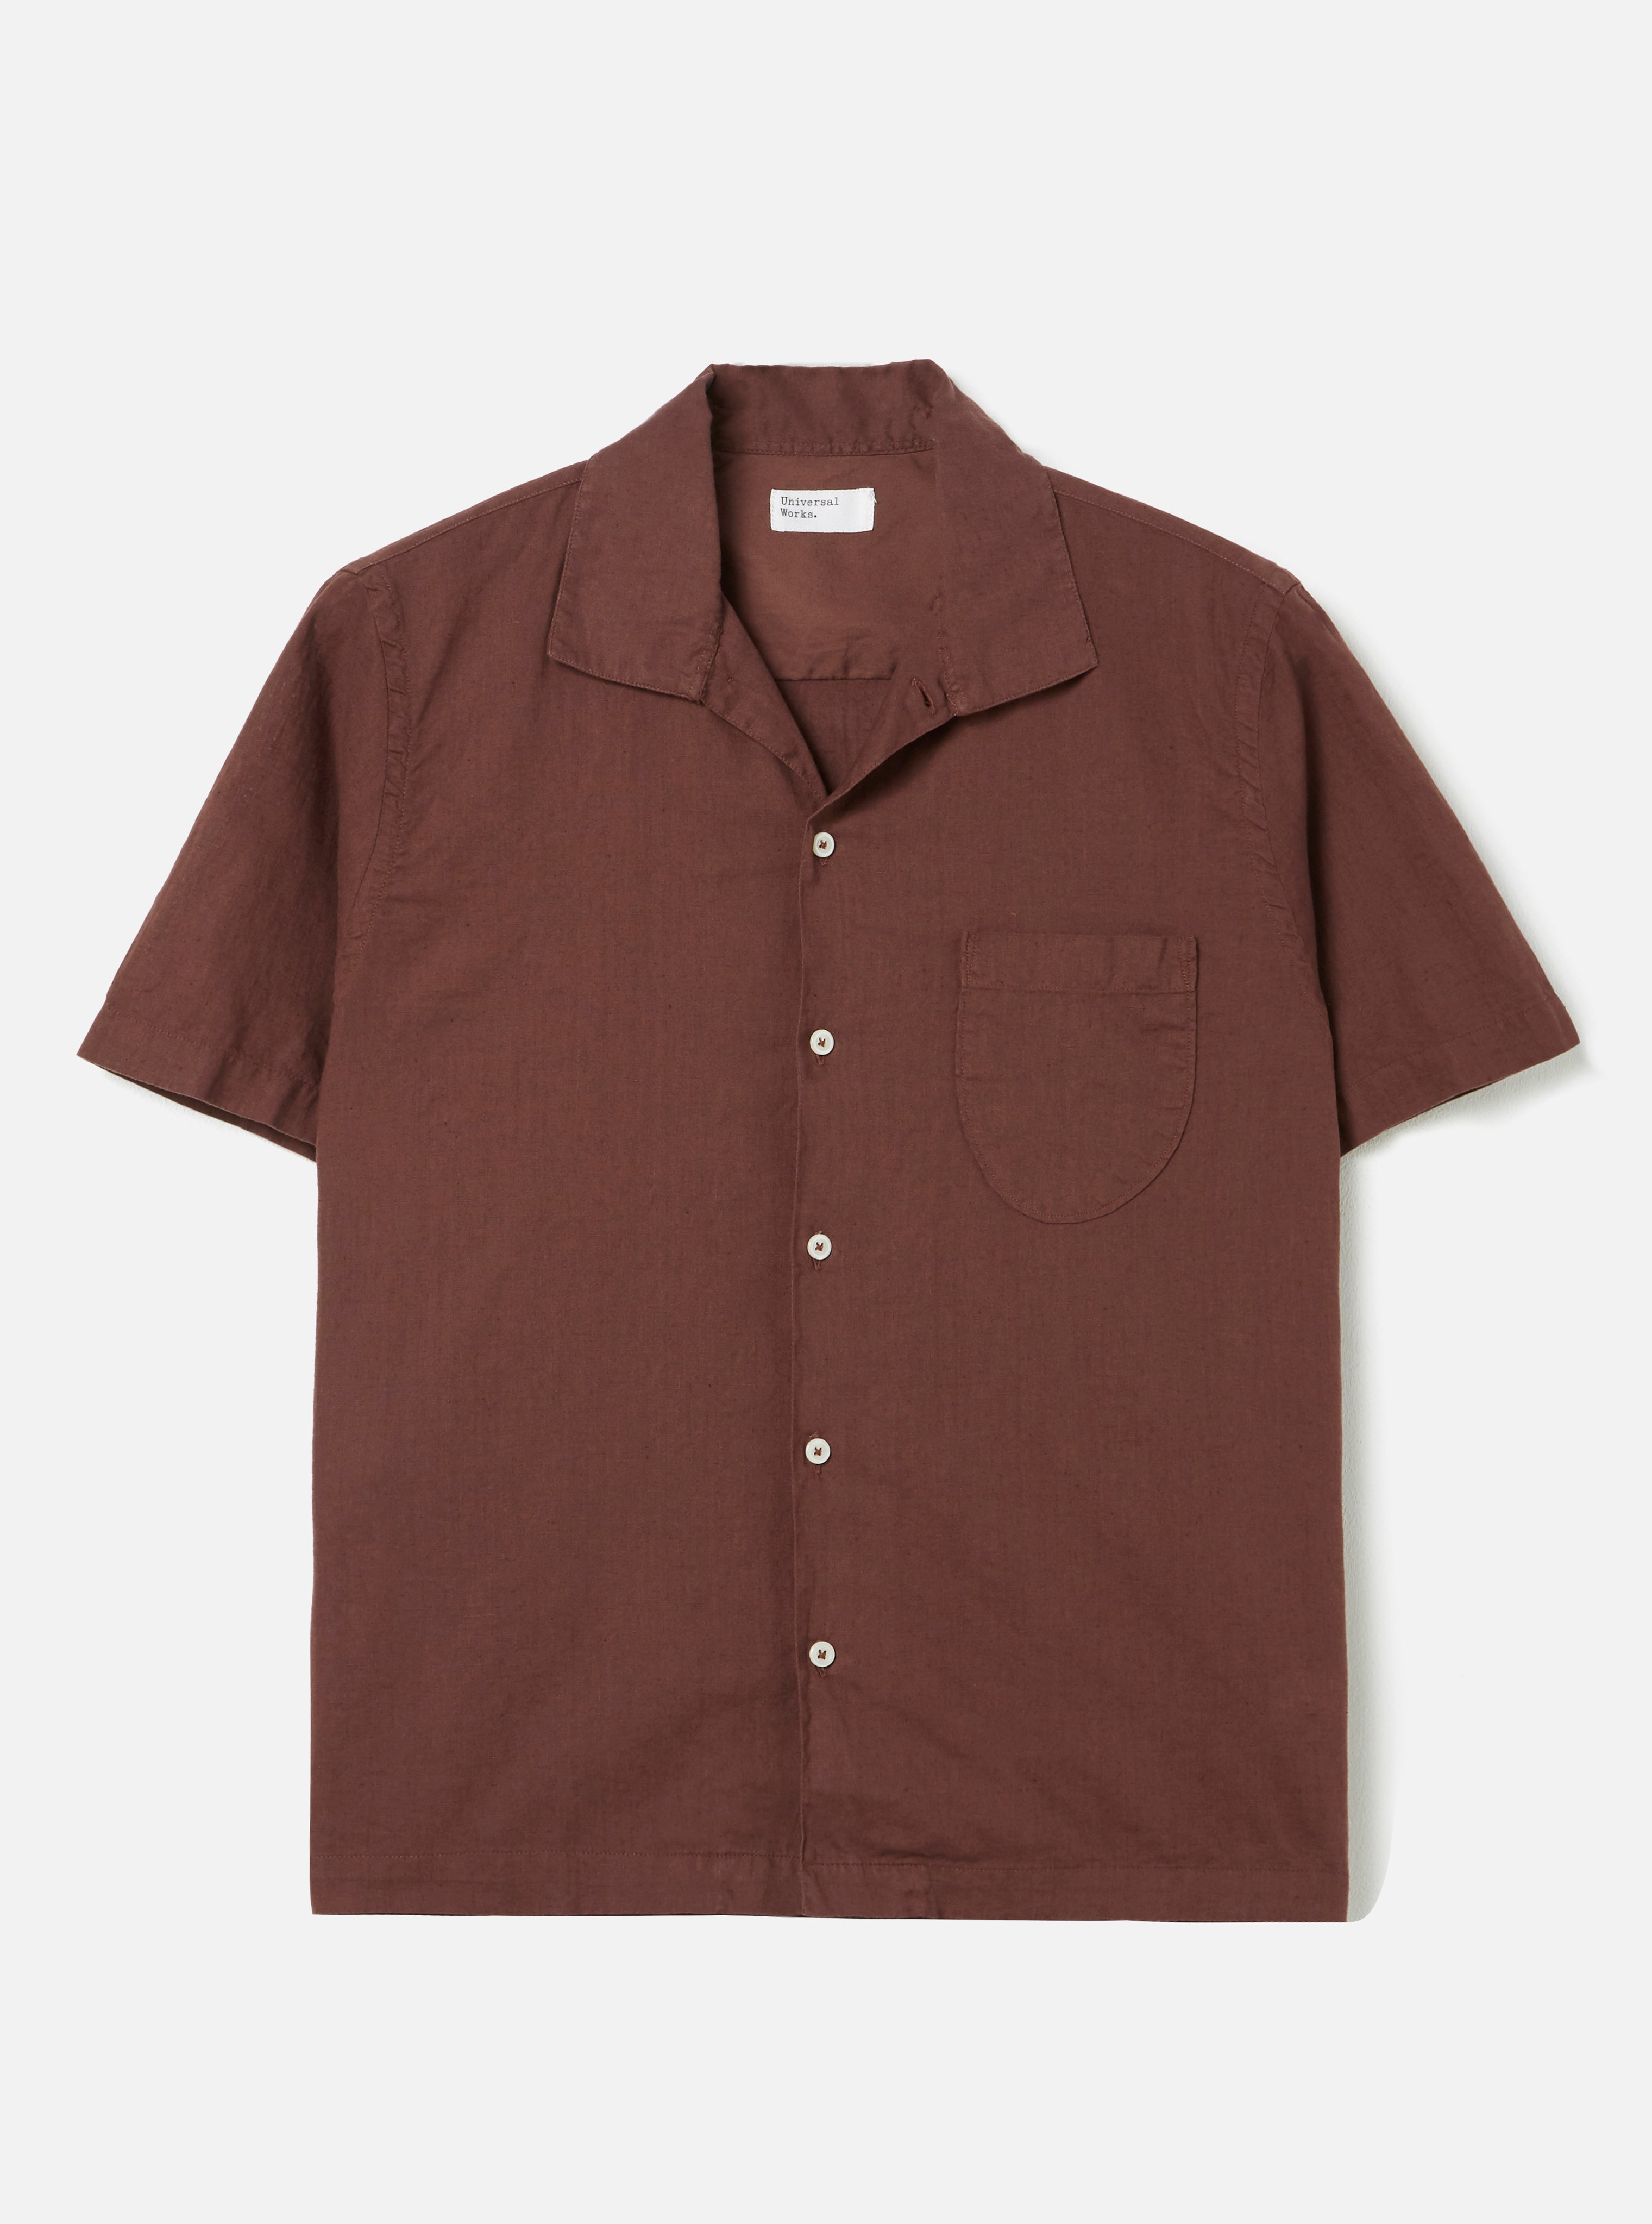 Universal Works Open Collar Shirt in Raisin Linen Shirting